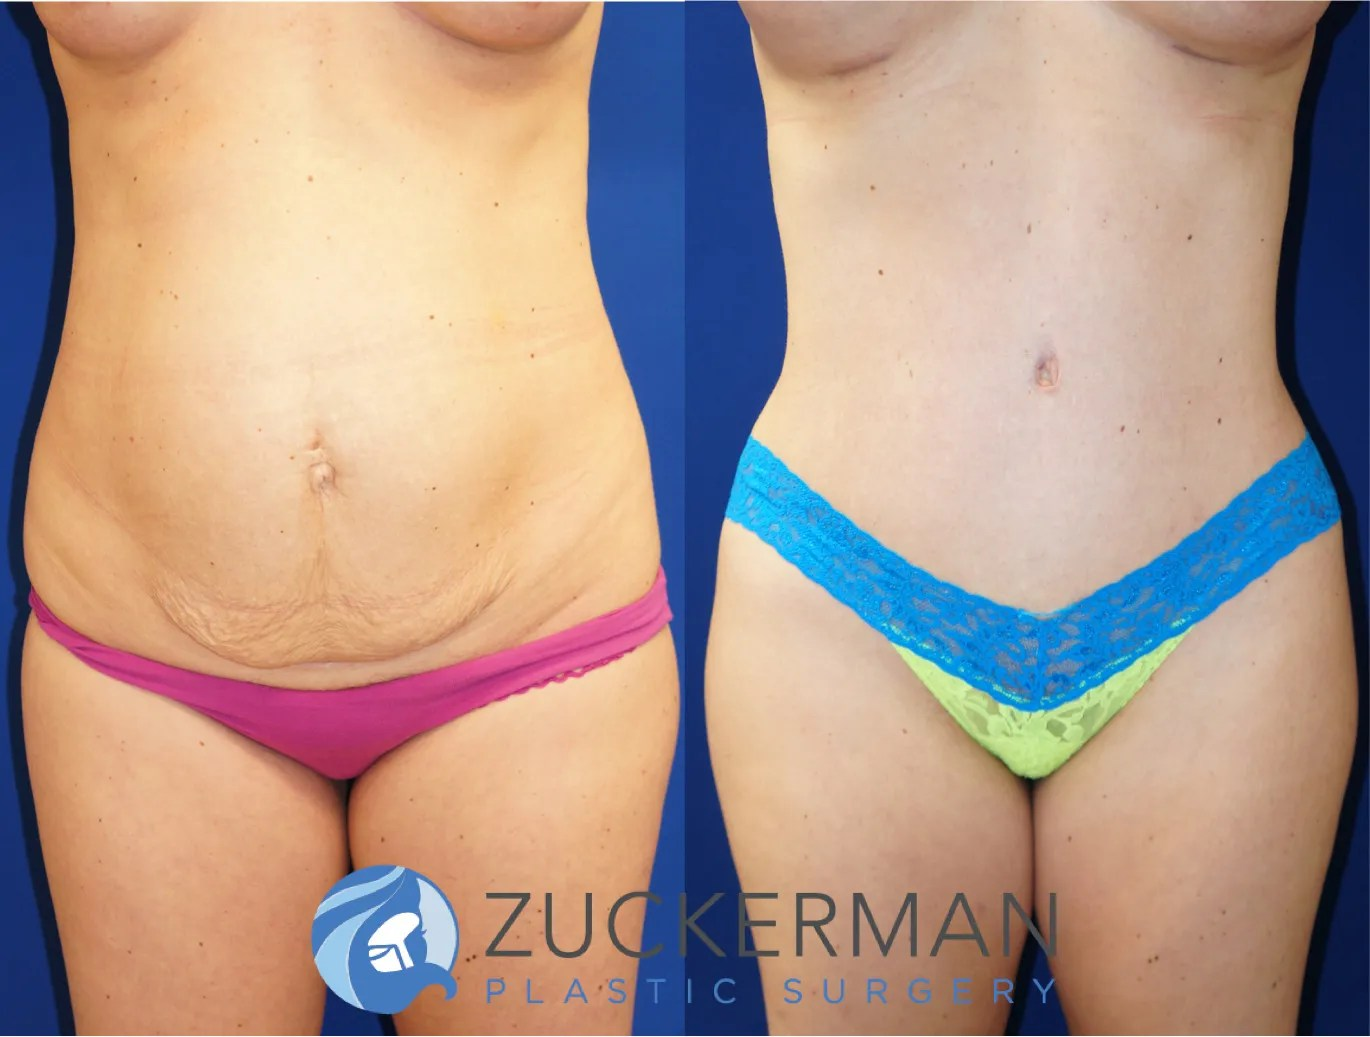 Tummy Tuck Abdominoplasty Nyc Top Ranked Zuckerman Plastic Surgery